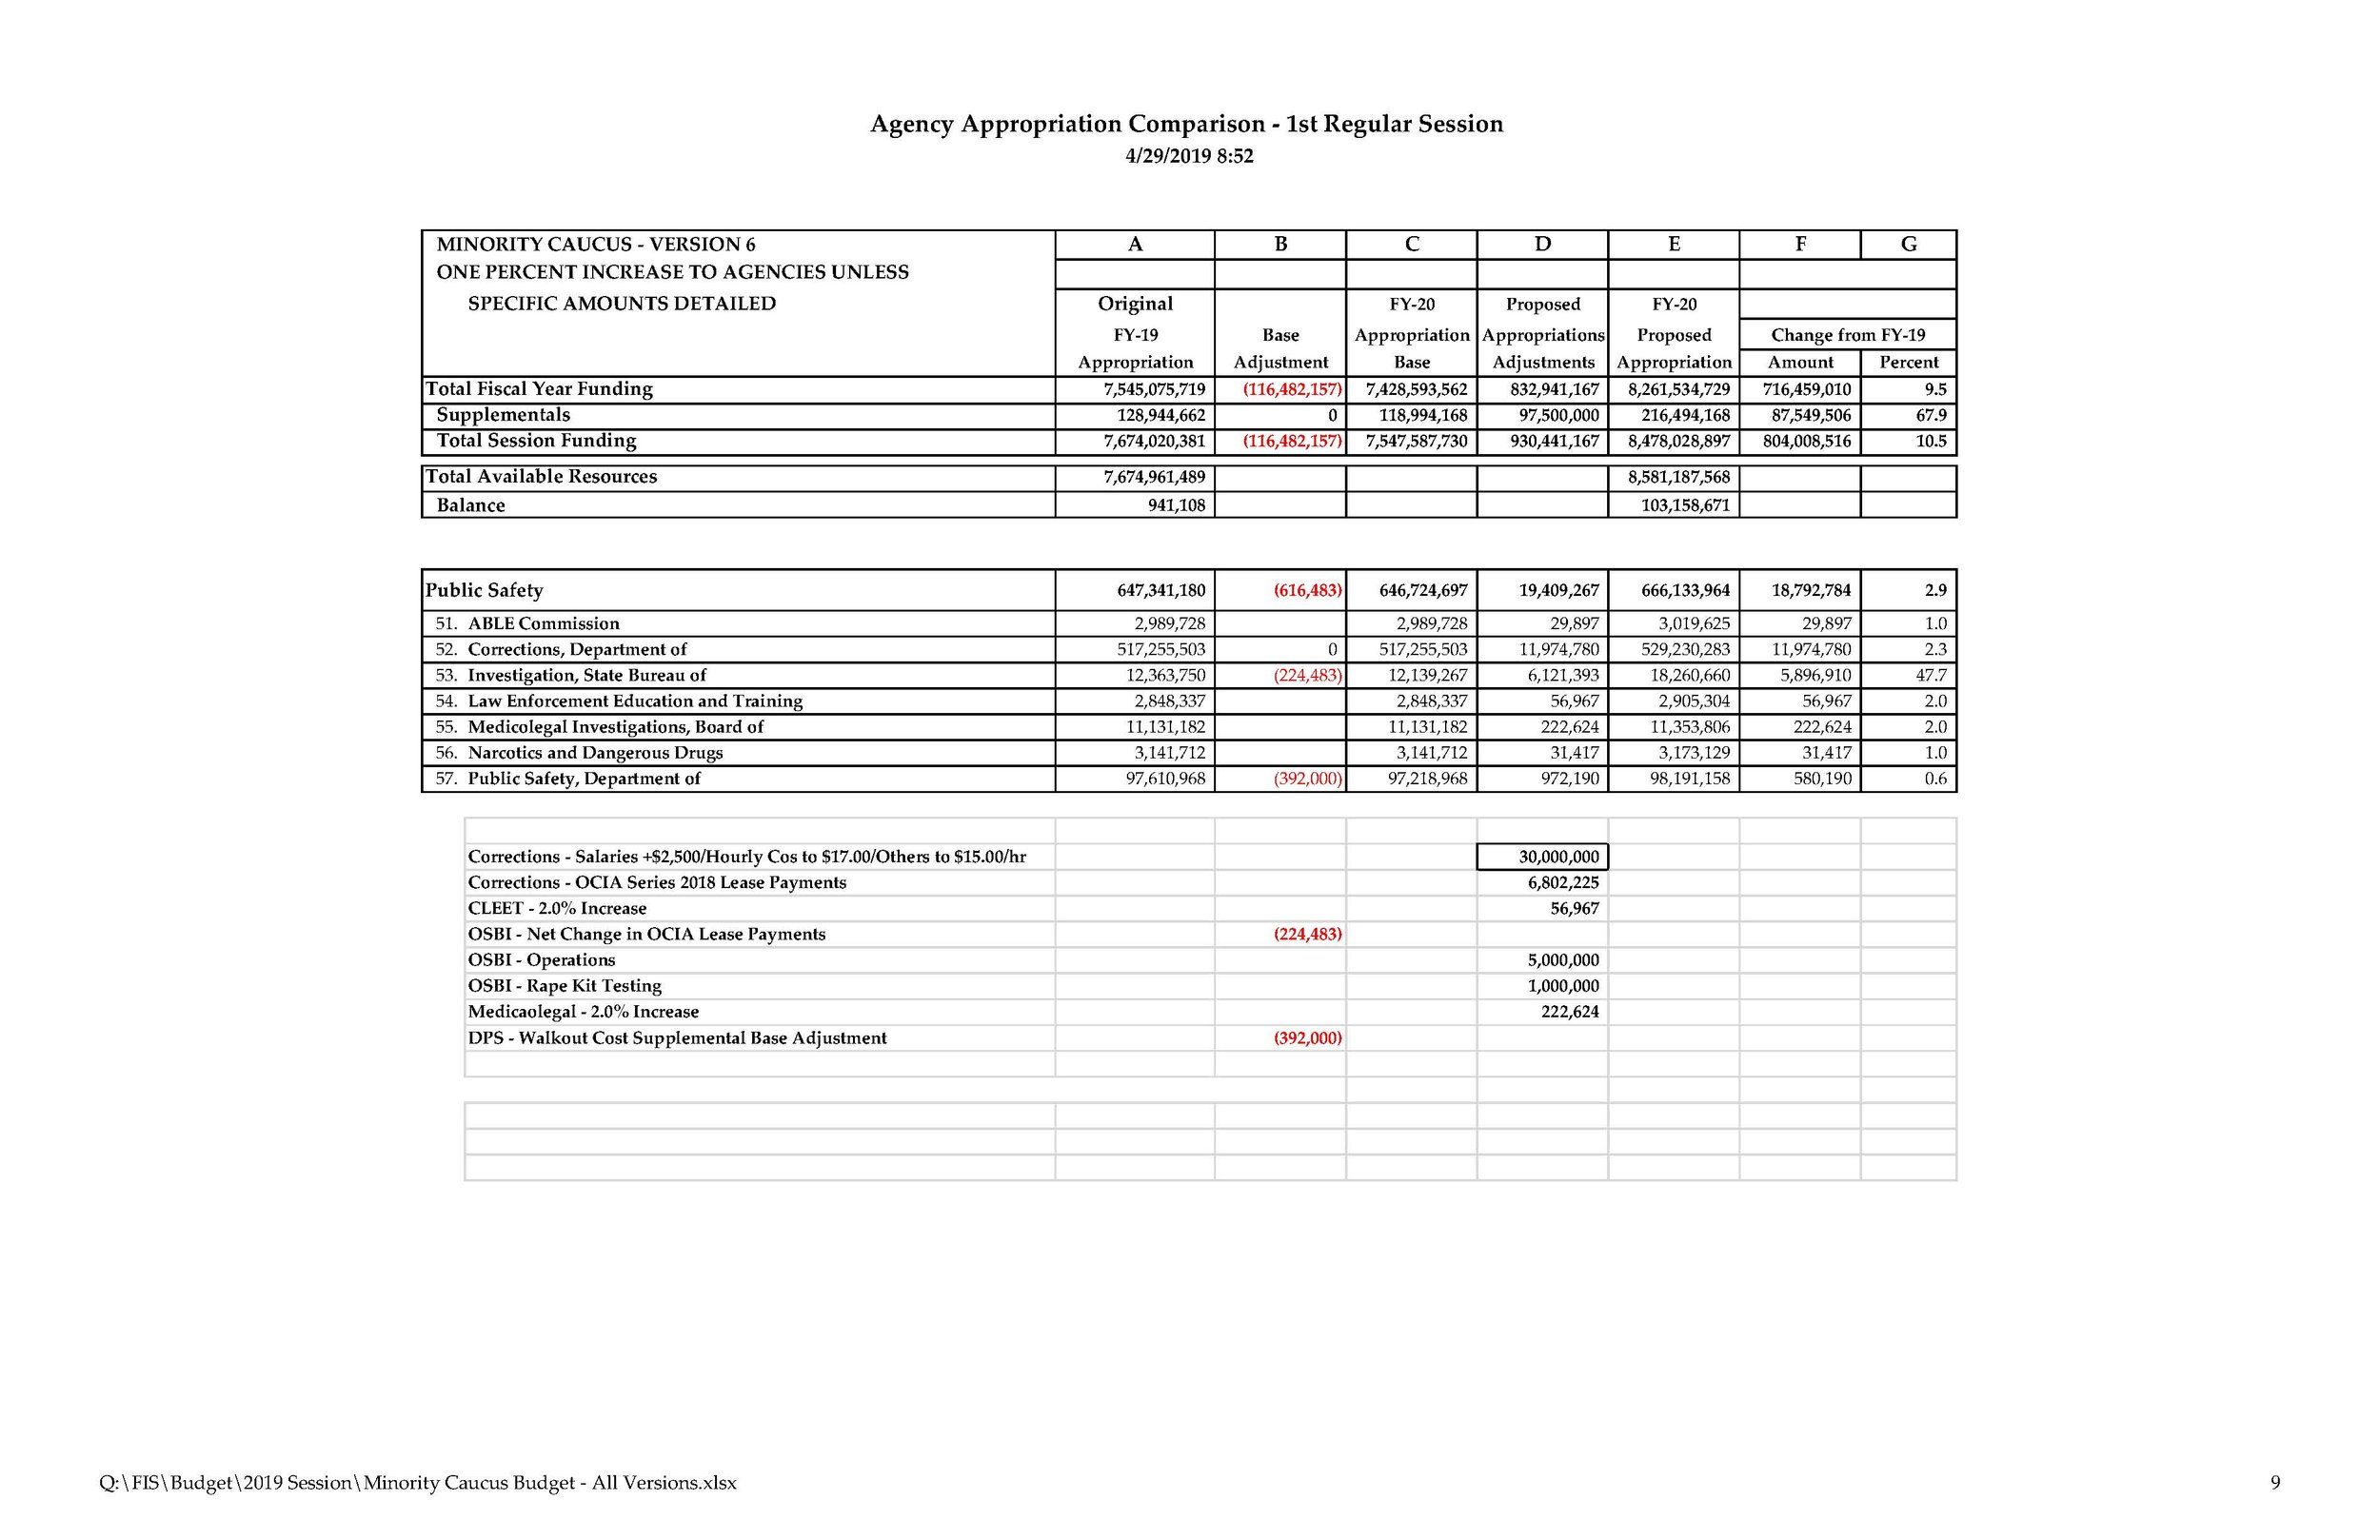 Minority Caucus Budget - All Versions_Page_09.jpg